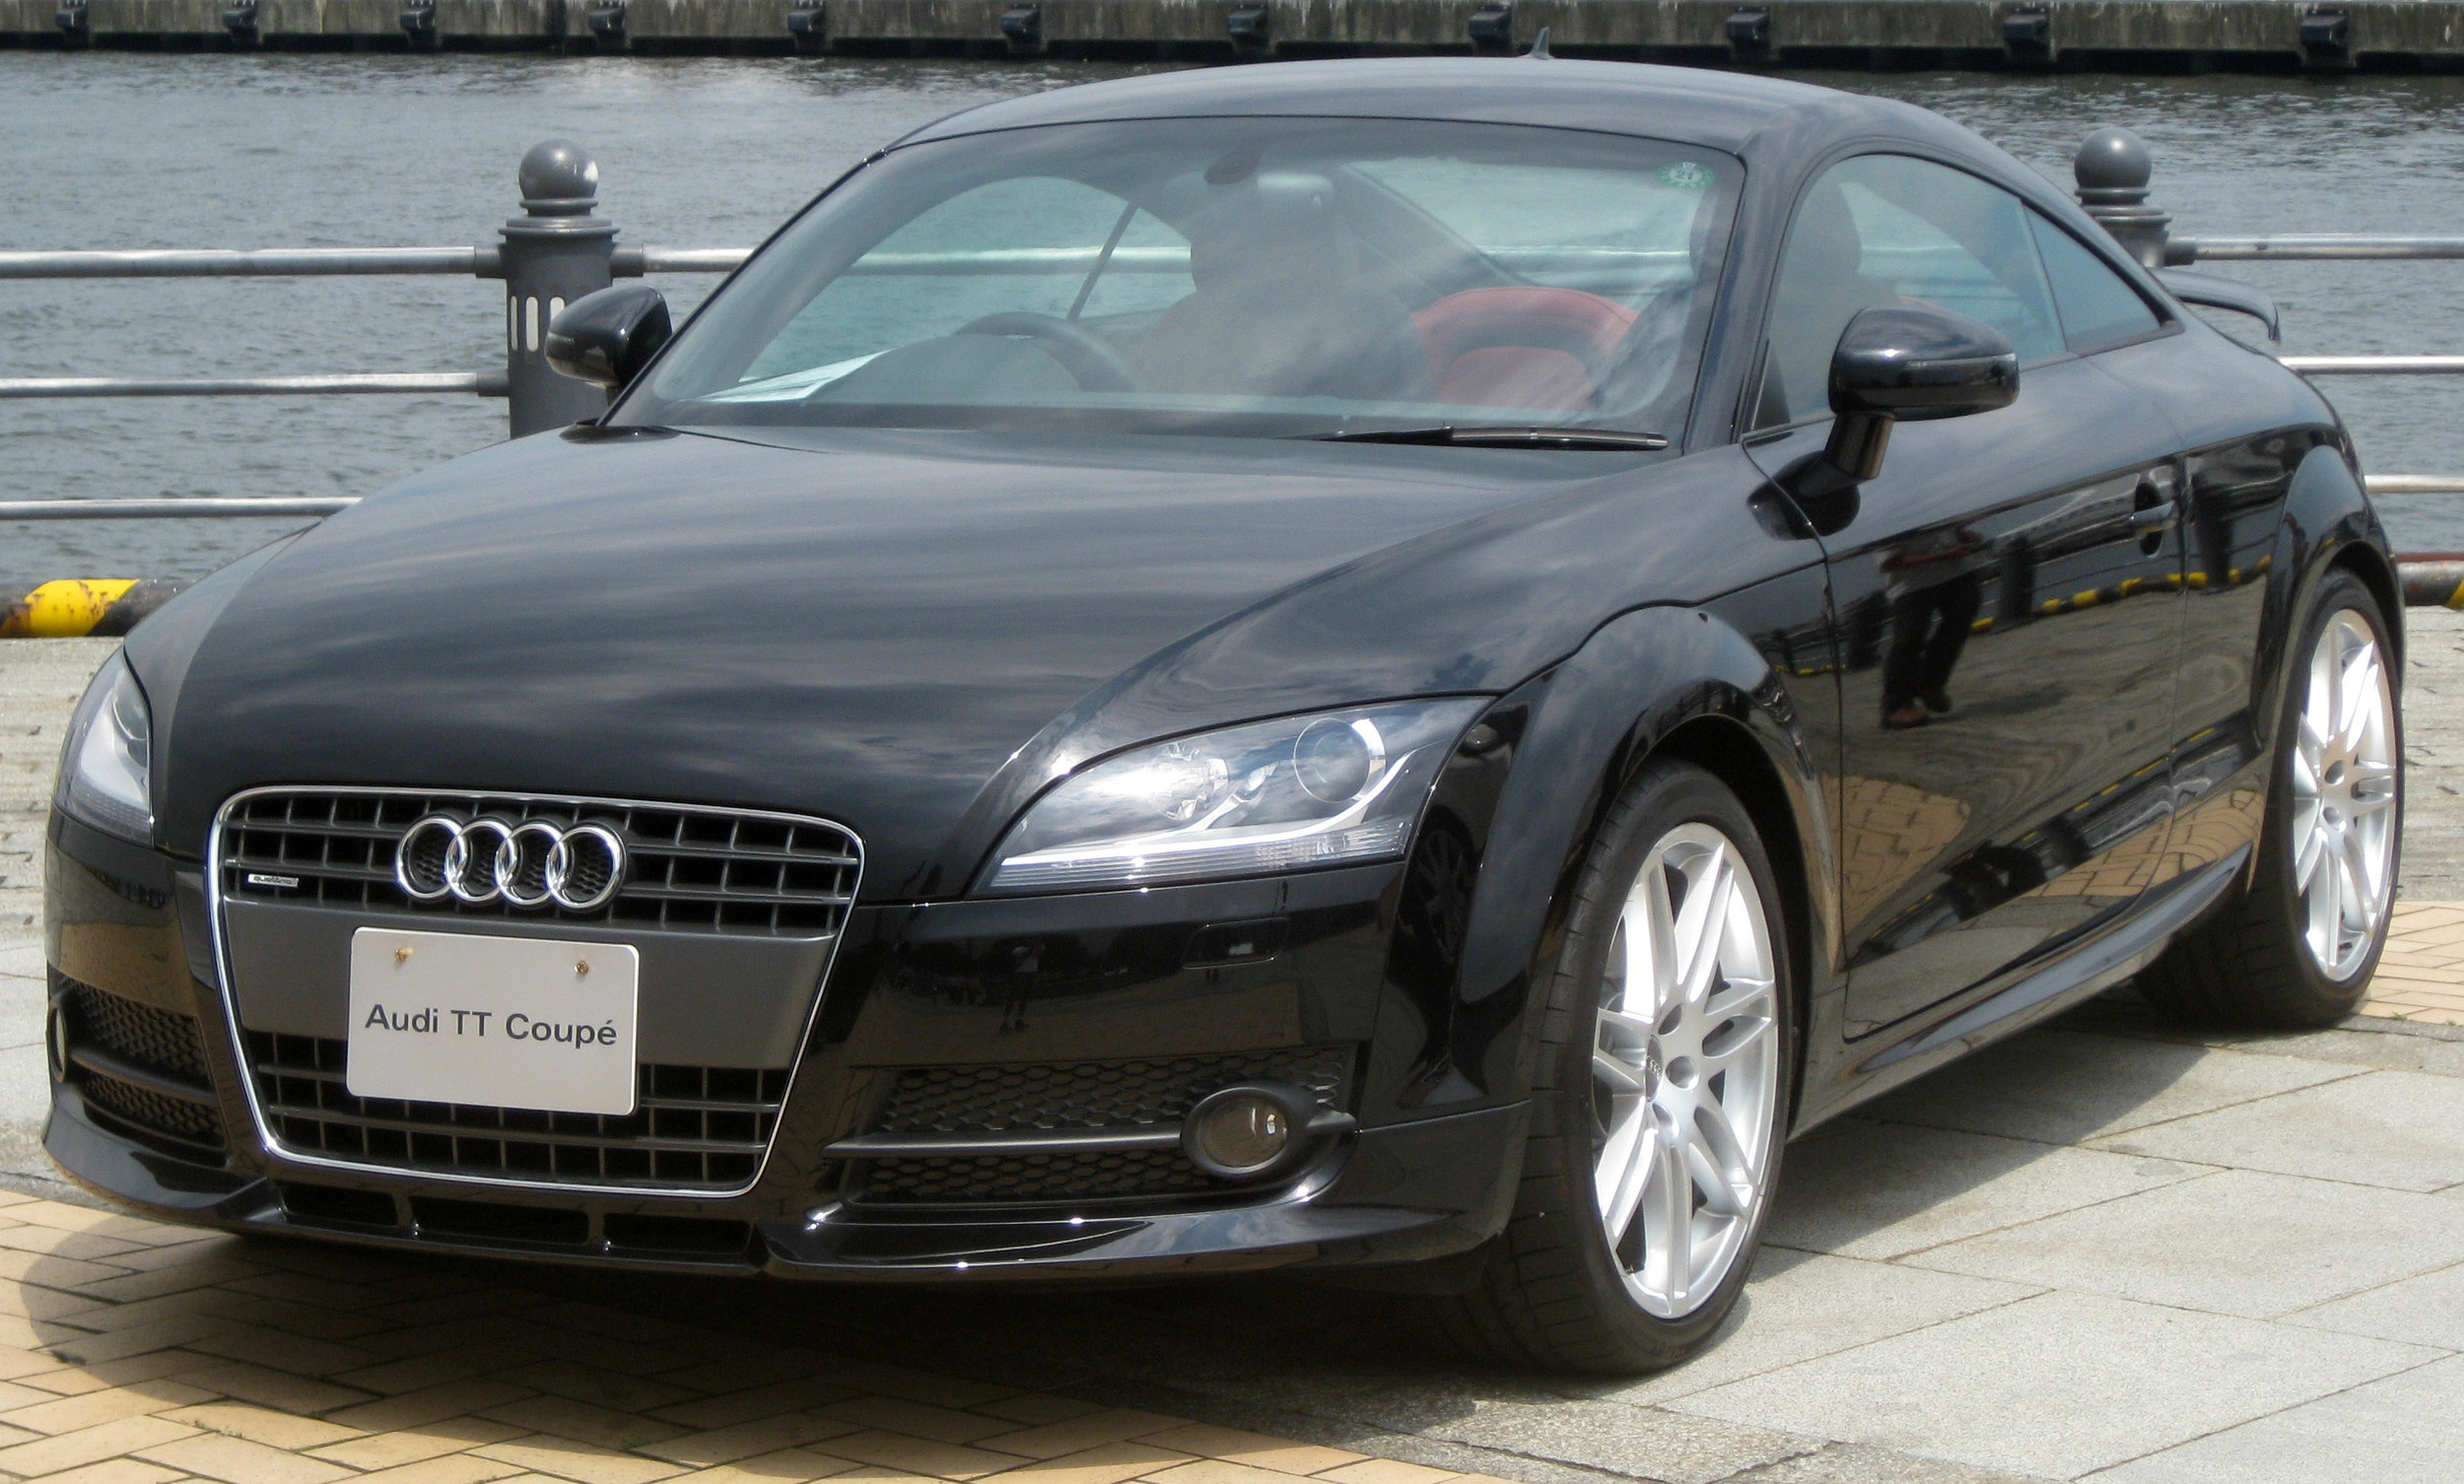 This is an older, base model Audi TT. Note the reasonable ride gap.